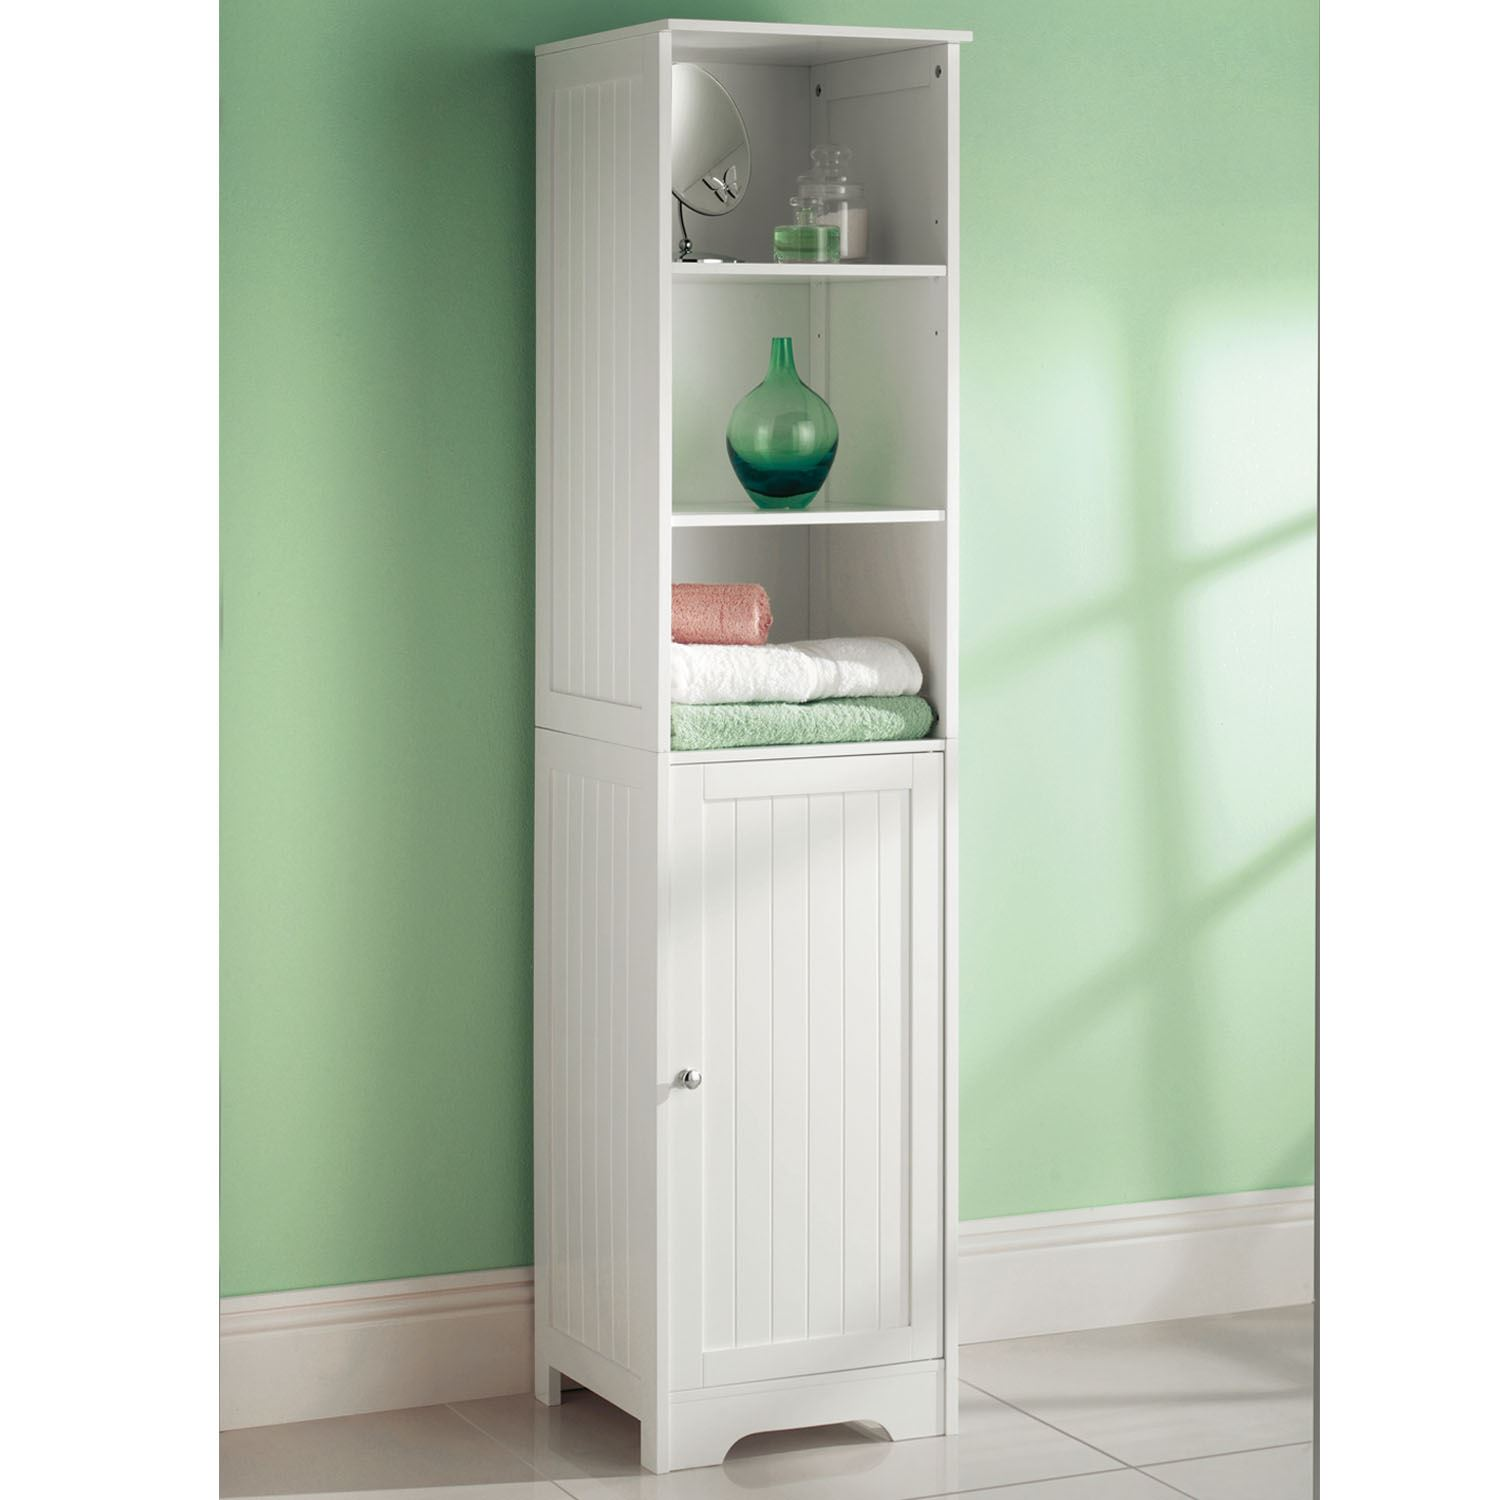 White wooden 1 drawer bathroom bedroom cabinet shelving for White bedroom cabinet